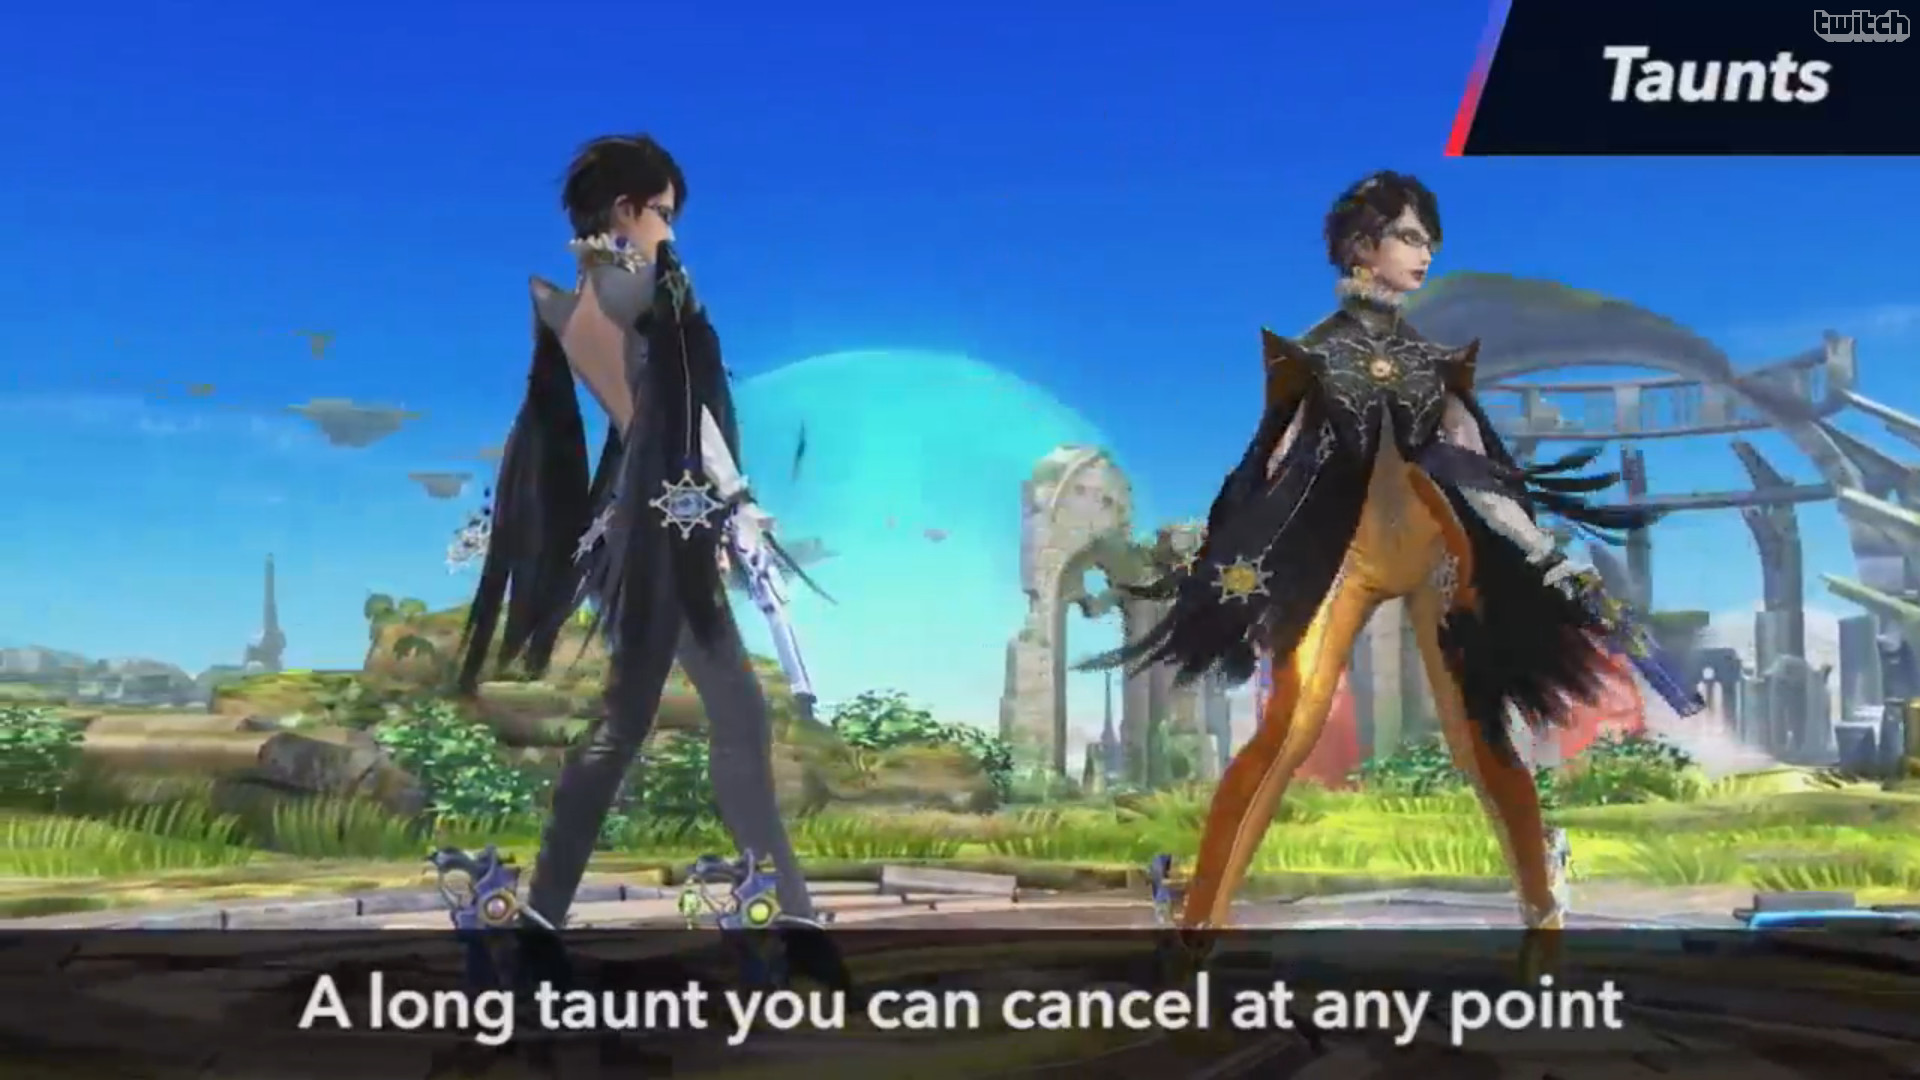 1920x1080 Taunts A long taunt you can cancel at any point